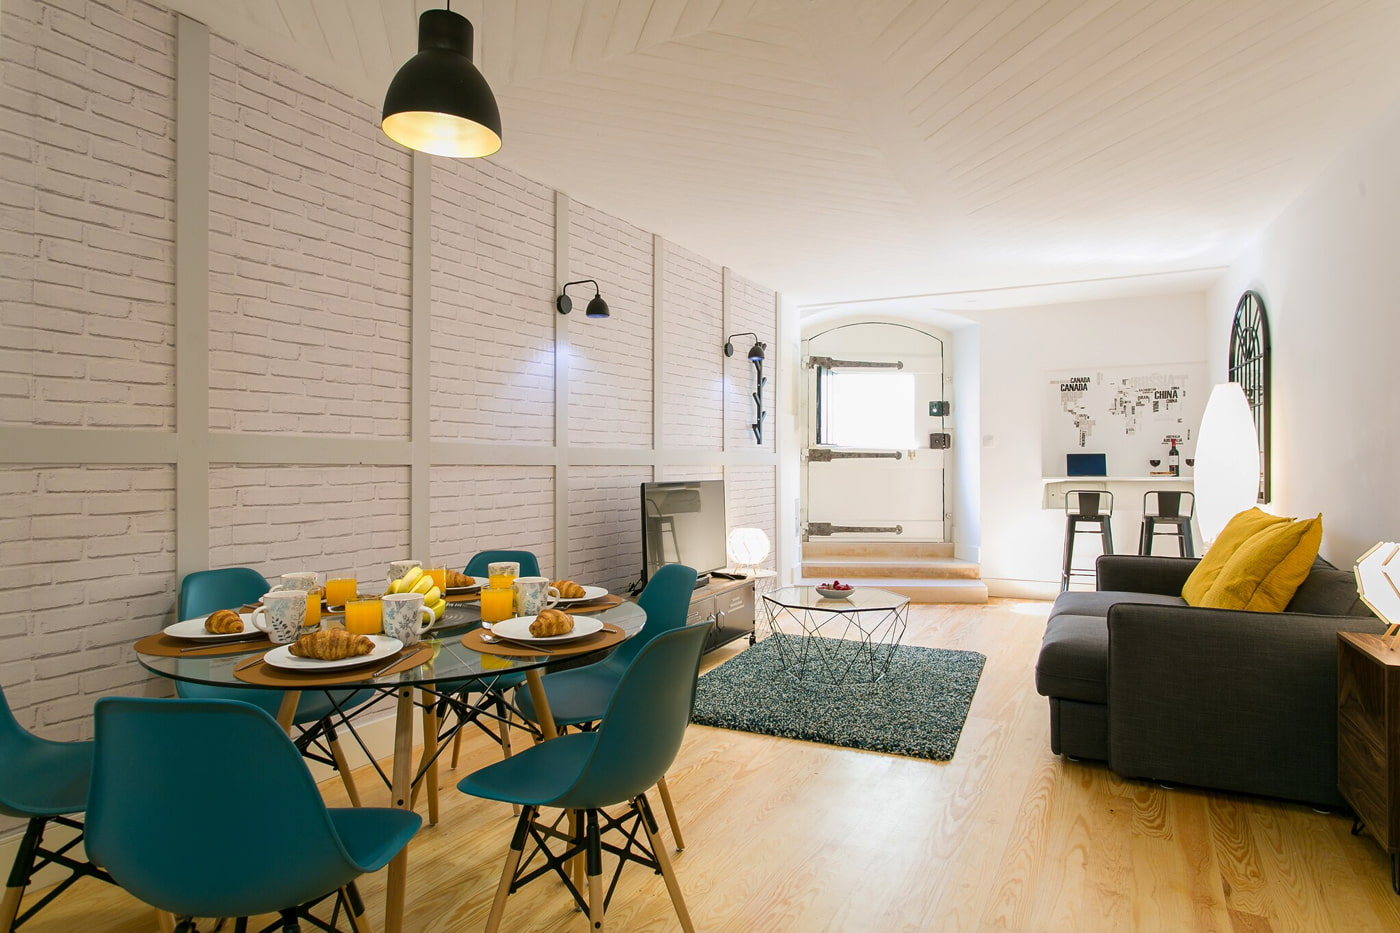 Vacation rental apartment in Lisbon